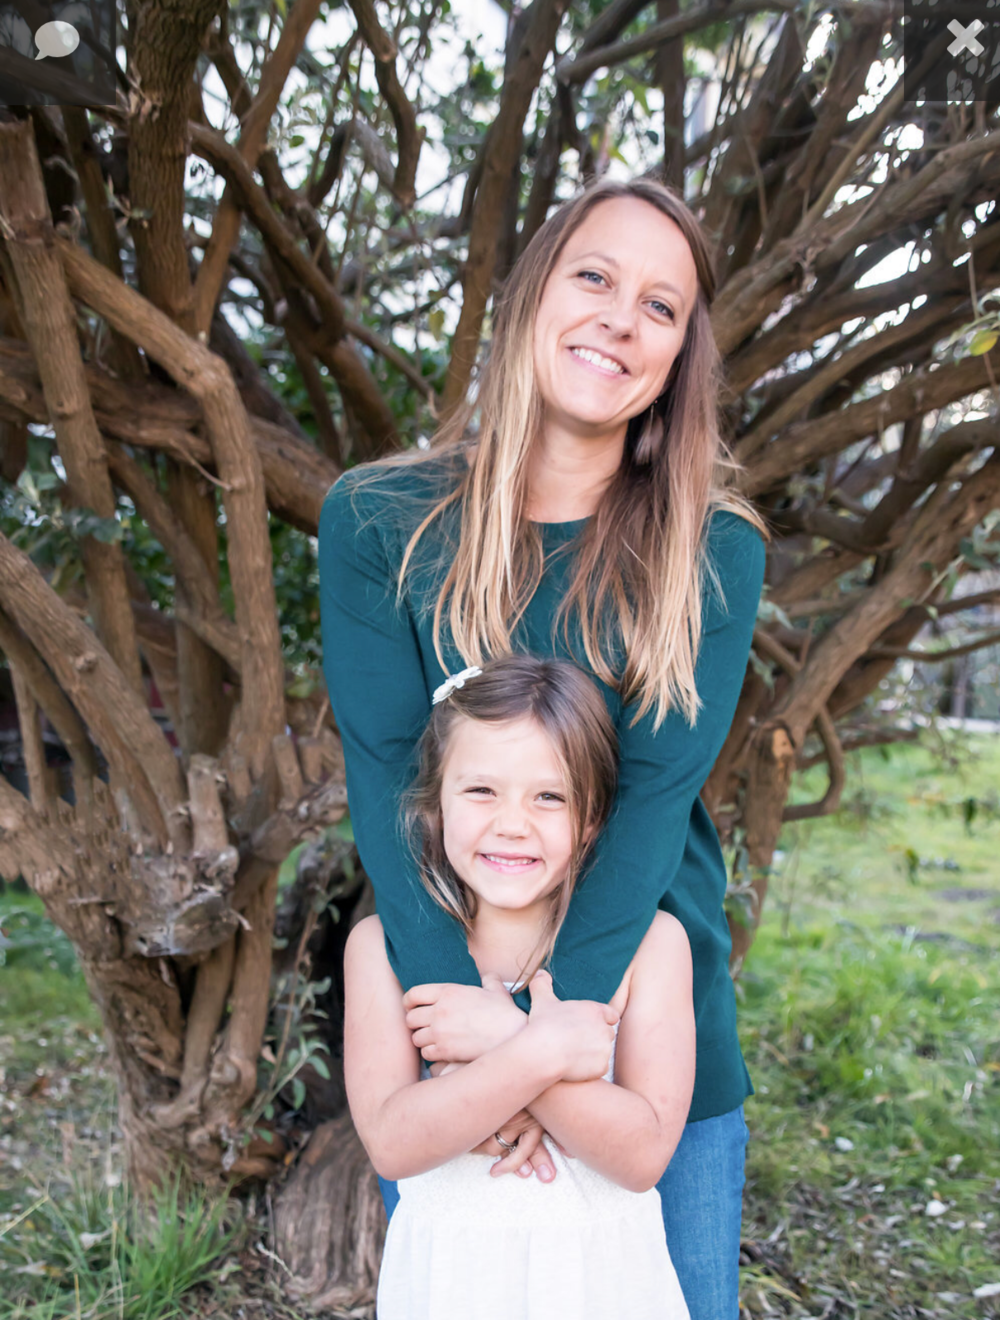 Sara Balla- Owner   Each day I am humbled by the strength of community, family and early childhood education created here at Discovery! It has truly been an honor to care for so many children here in our beautiful County of Santa Cruz. Along with my husband's support and guidance, I opened the doors to Discovery in July of 2015 with the intention of creating a community hub for new parents to build strong relationships and find solace in the nurturing environment created here for our children. I started my education career as an elementary teacher in 2004, working with children between Kindergarten and third grade, collaborating with amazing and innovative educator teams in the wider Bay Area and more recently at Pacific Elementary in Davenport. After the birth of my daughter, my husband and I opened a home-based preschool on Glen Canyon Rd. and eventually created and established today's Discovery Preschool and Family Center. My vision for the school is to foster the professional development and personal growth of our educators to become life-long learners and strong leaders in our educational community; additionally, I strive to create programs for families to feel supported and nurtured throughout the often challenging and ever-changing lives of early childhood!  Email:  sara.scdiscoverypreschool@gmail.com